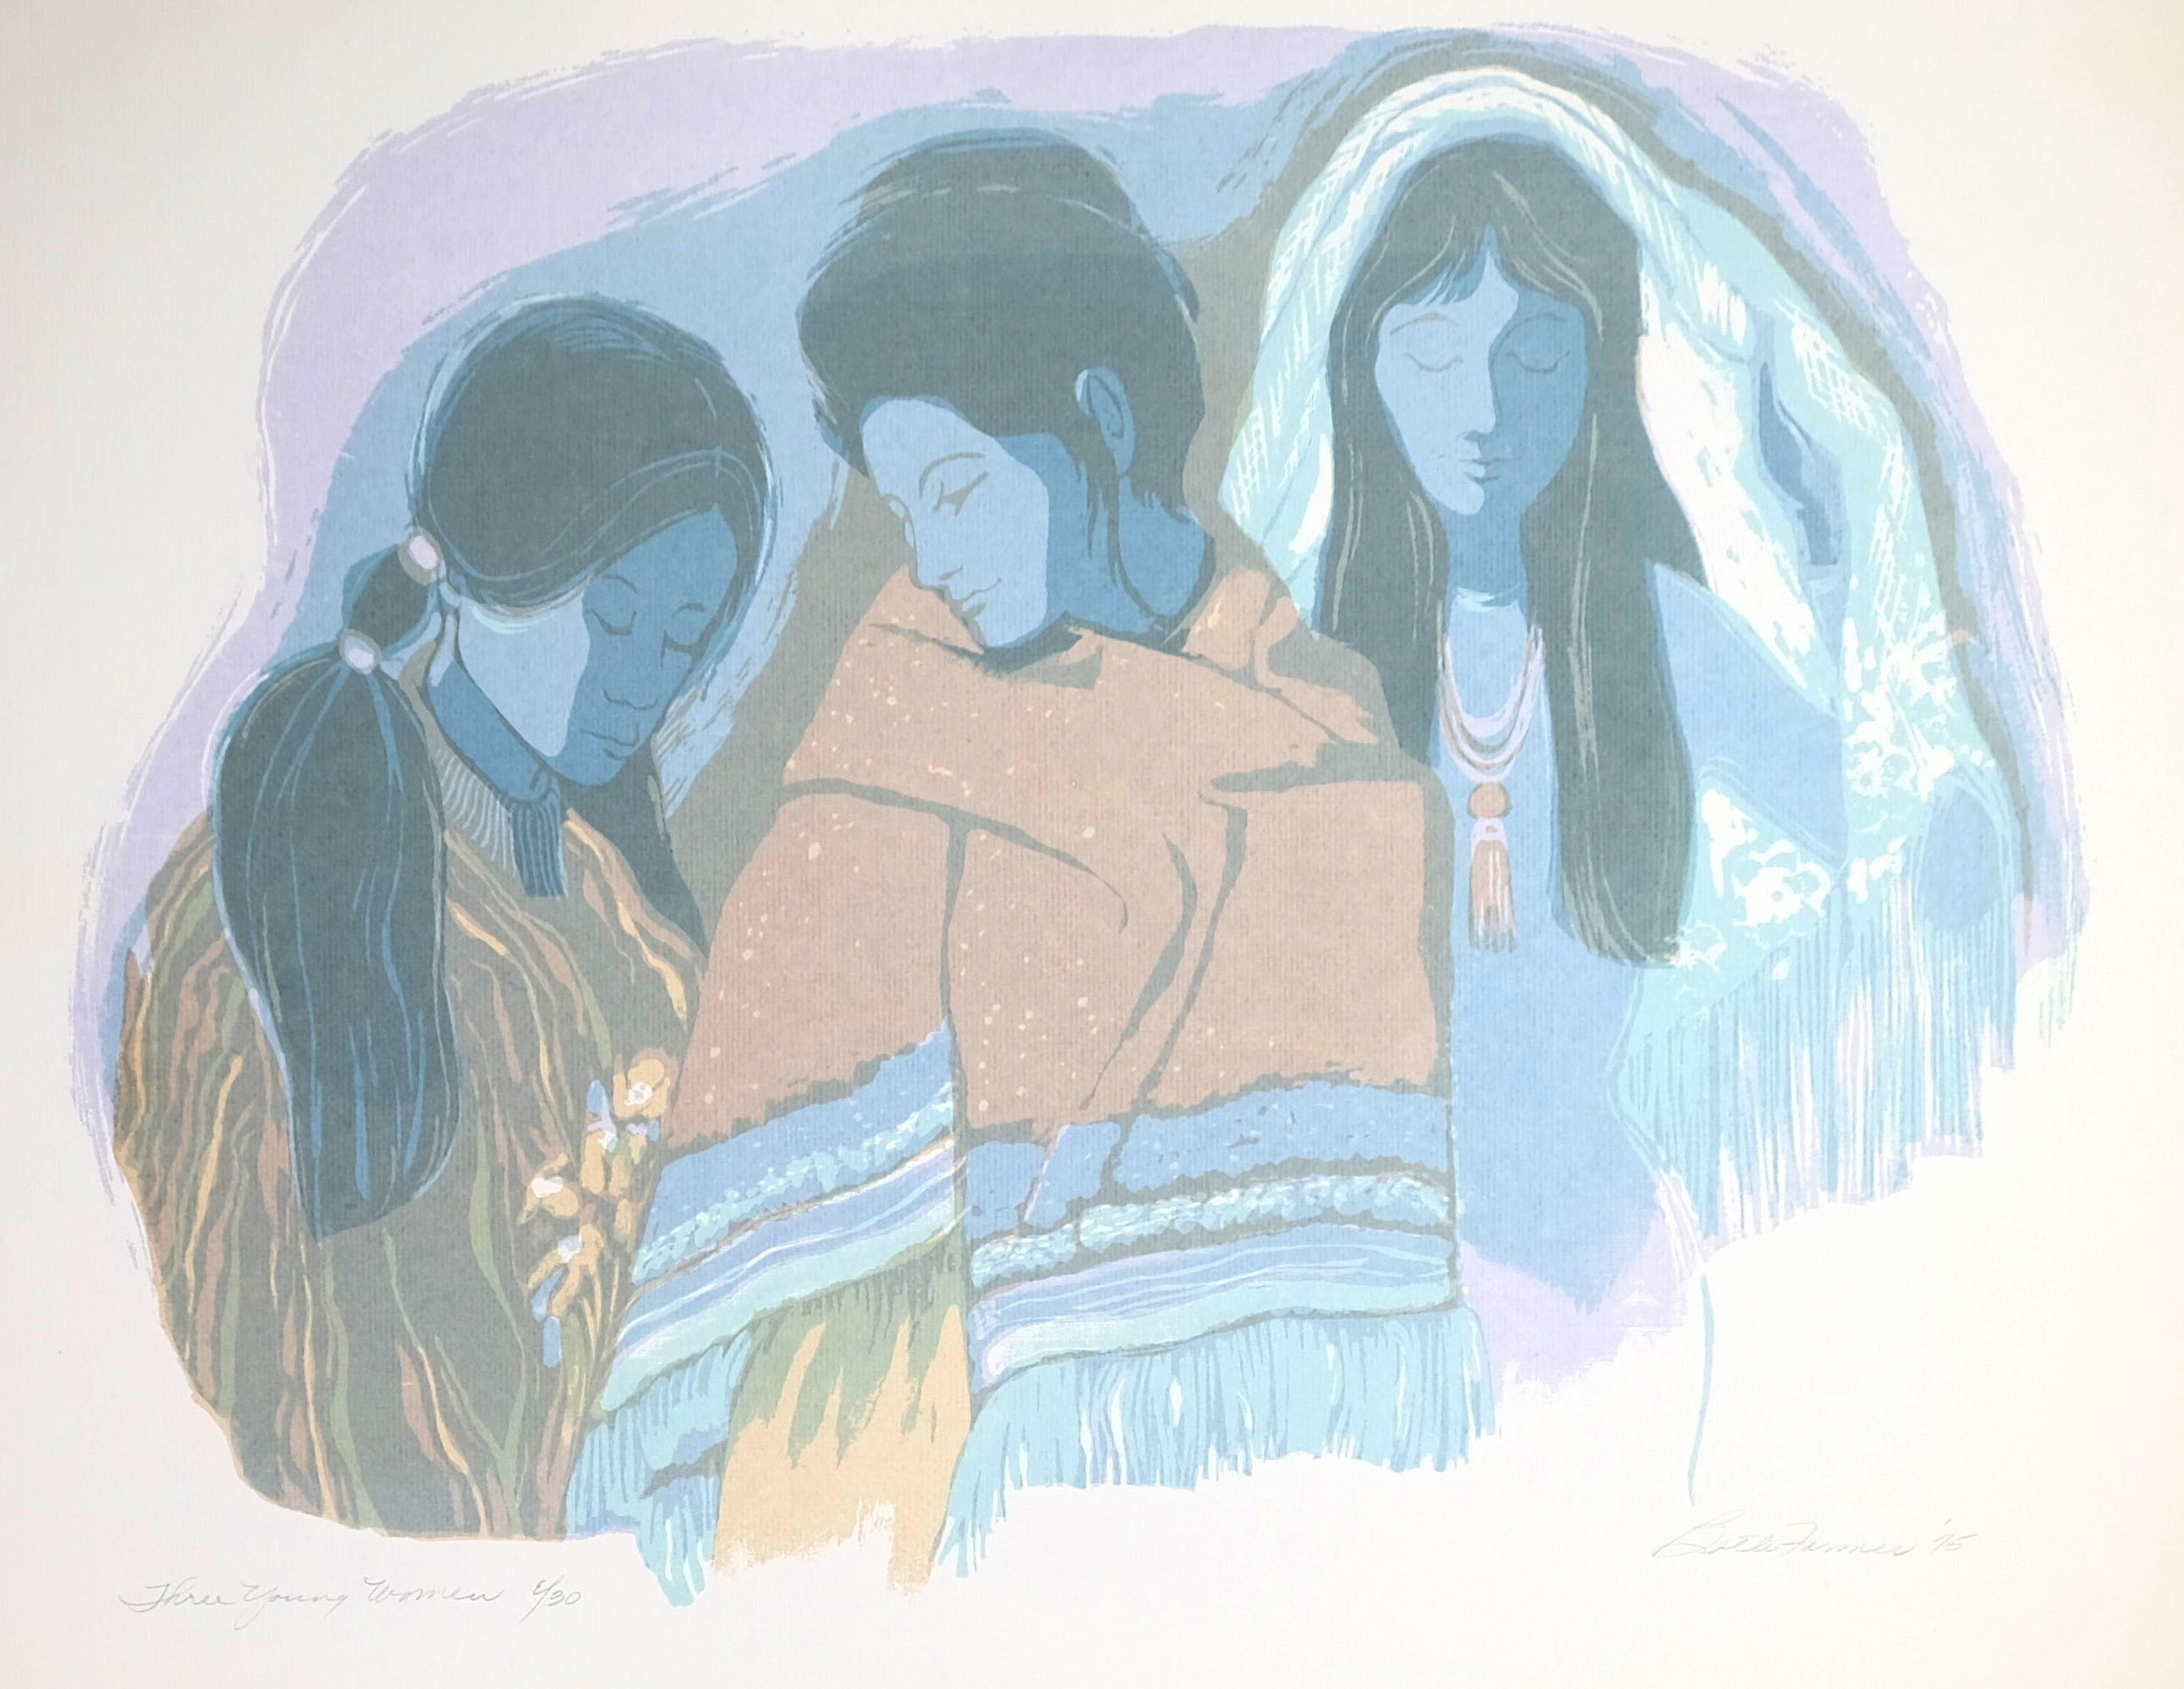 Three Young Women, Blue, $175